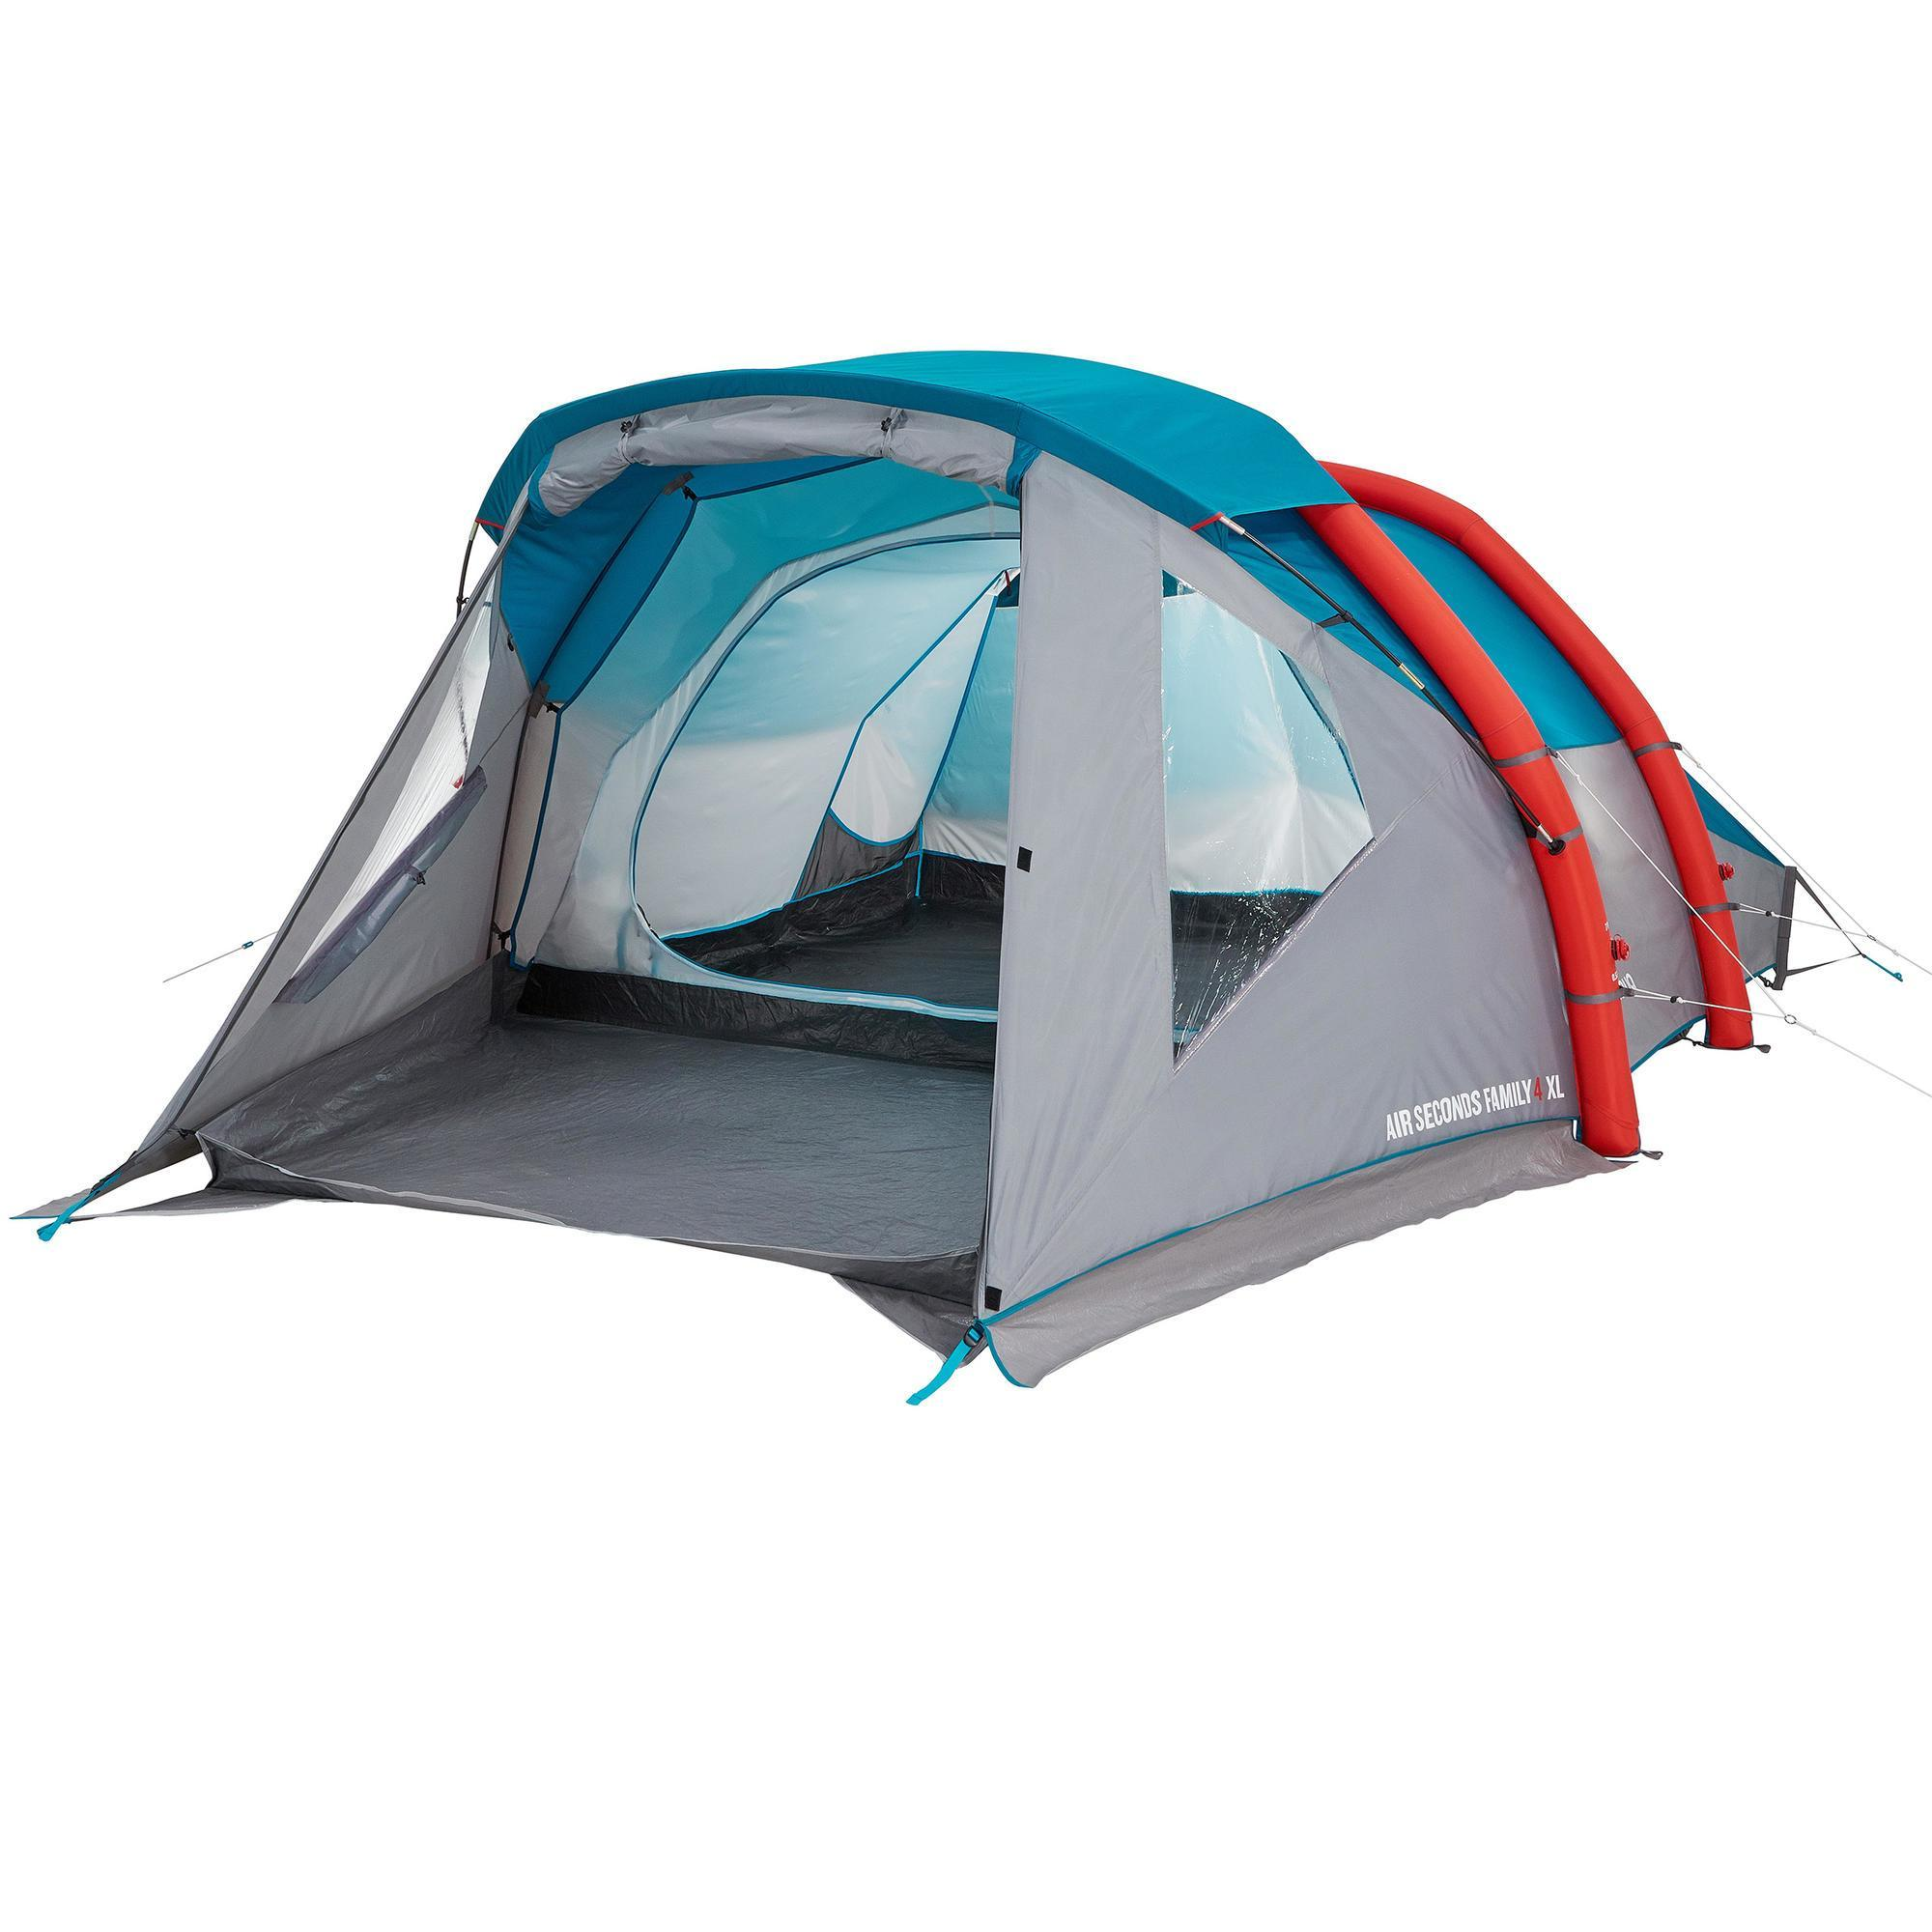 Zelt 6 9 M : Air seconds family xl camping tent persons